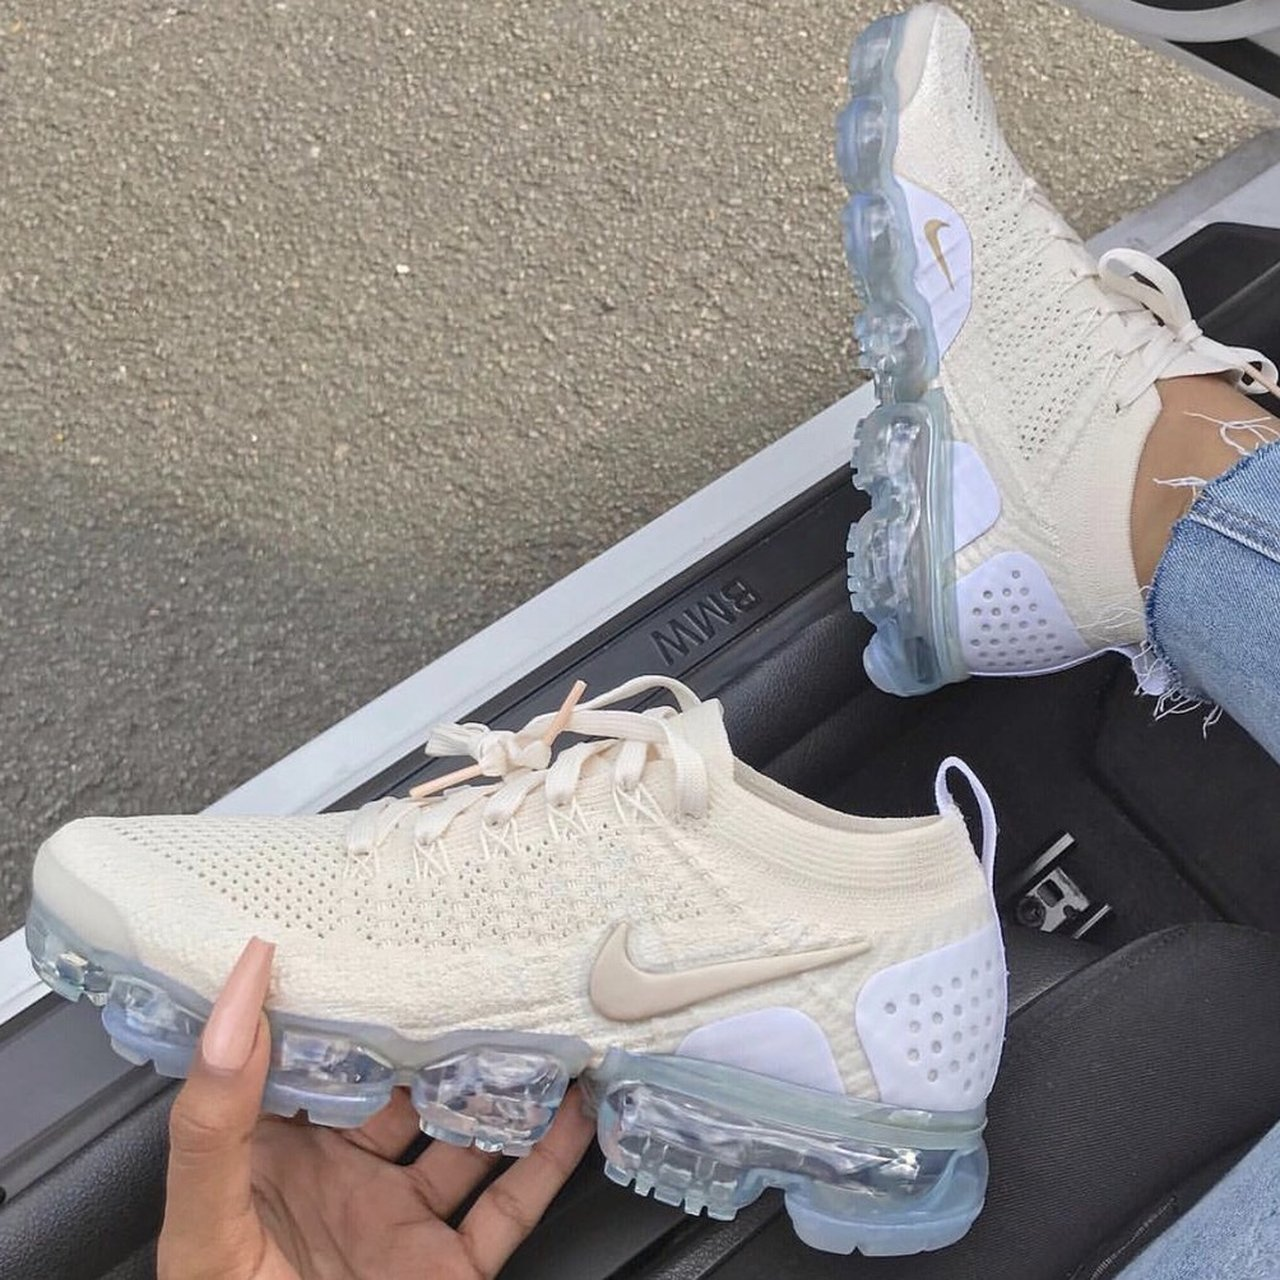 Nike Vapormax Plus flyknit 2 Cream and